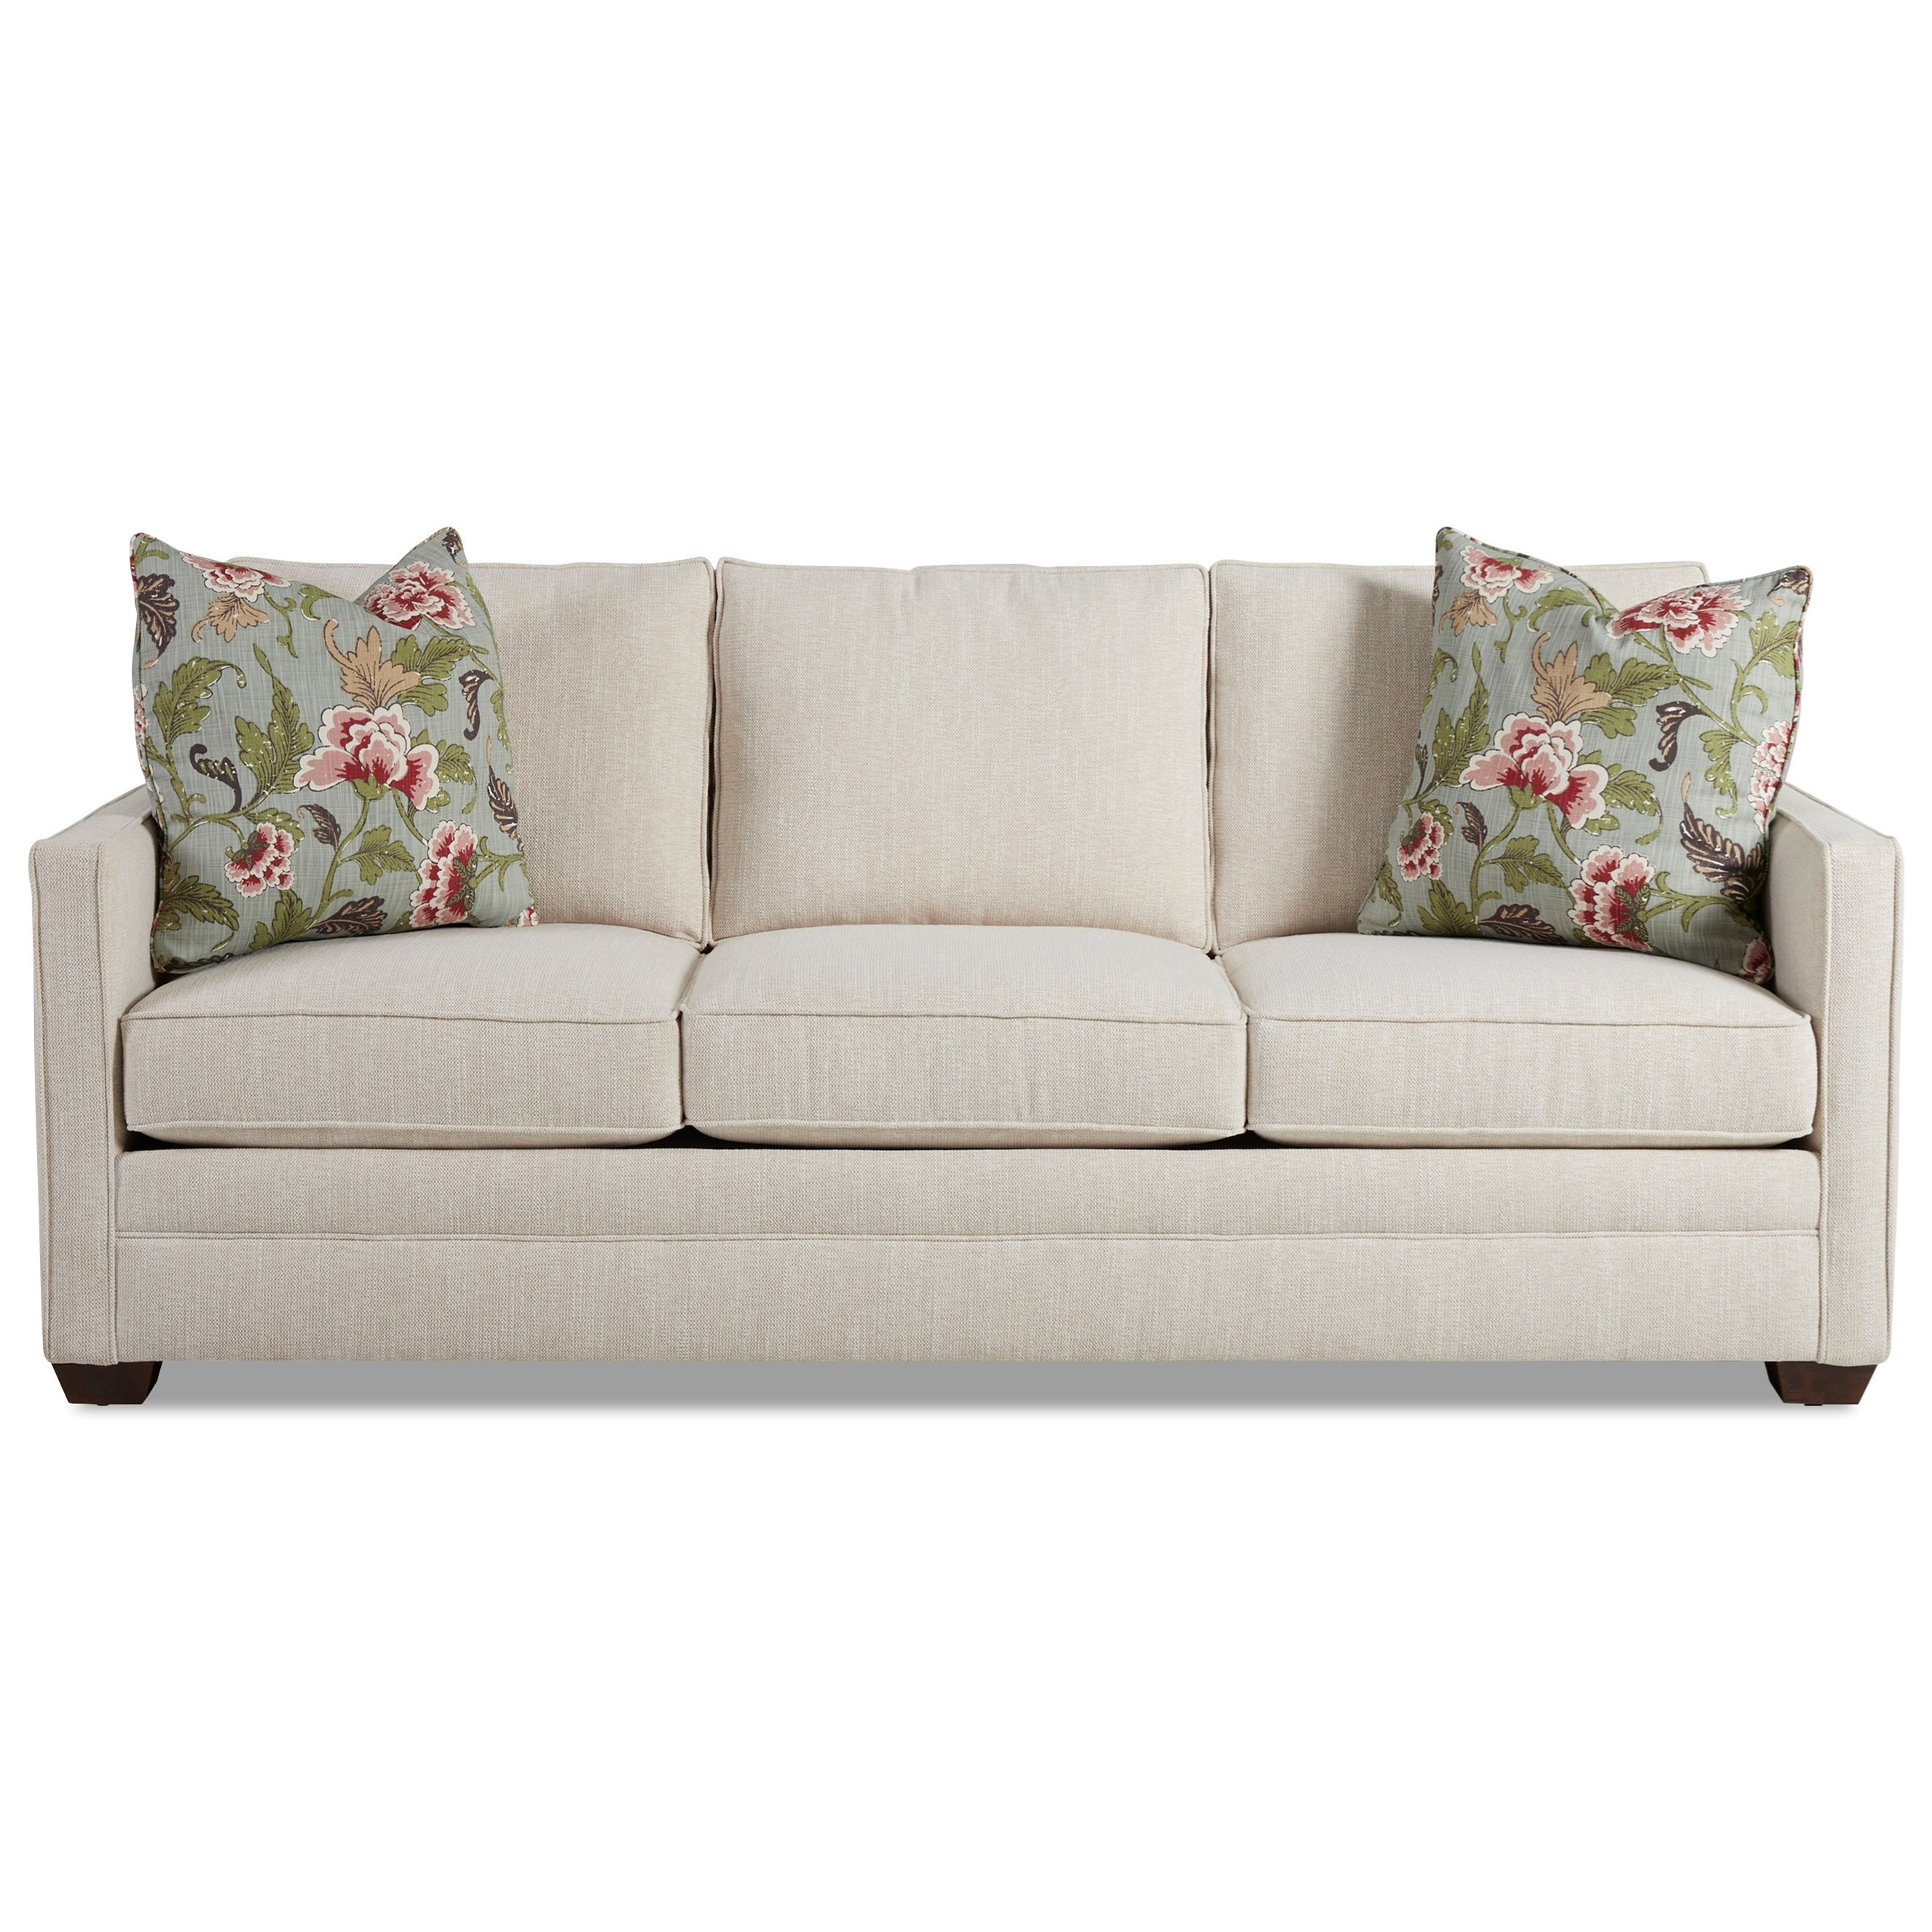 Ansley Sofa by Klaussner at Catalog Outlet